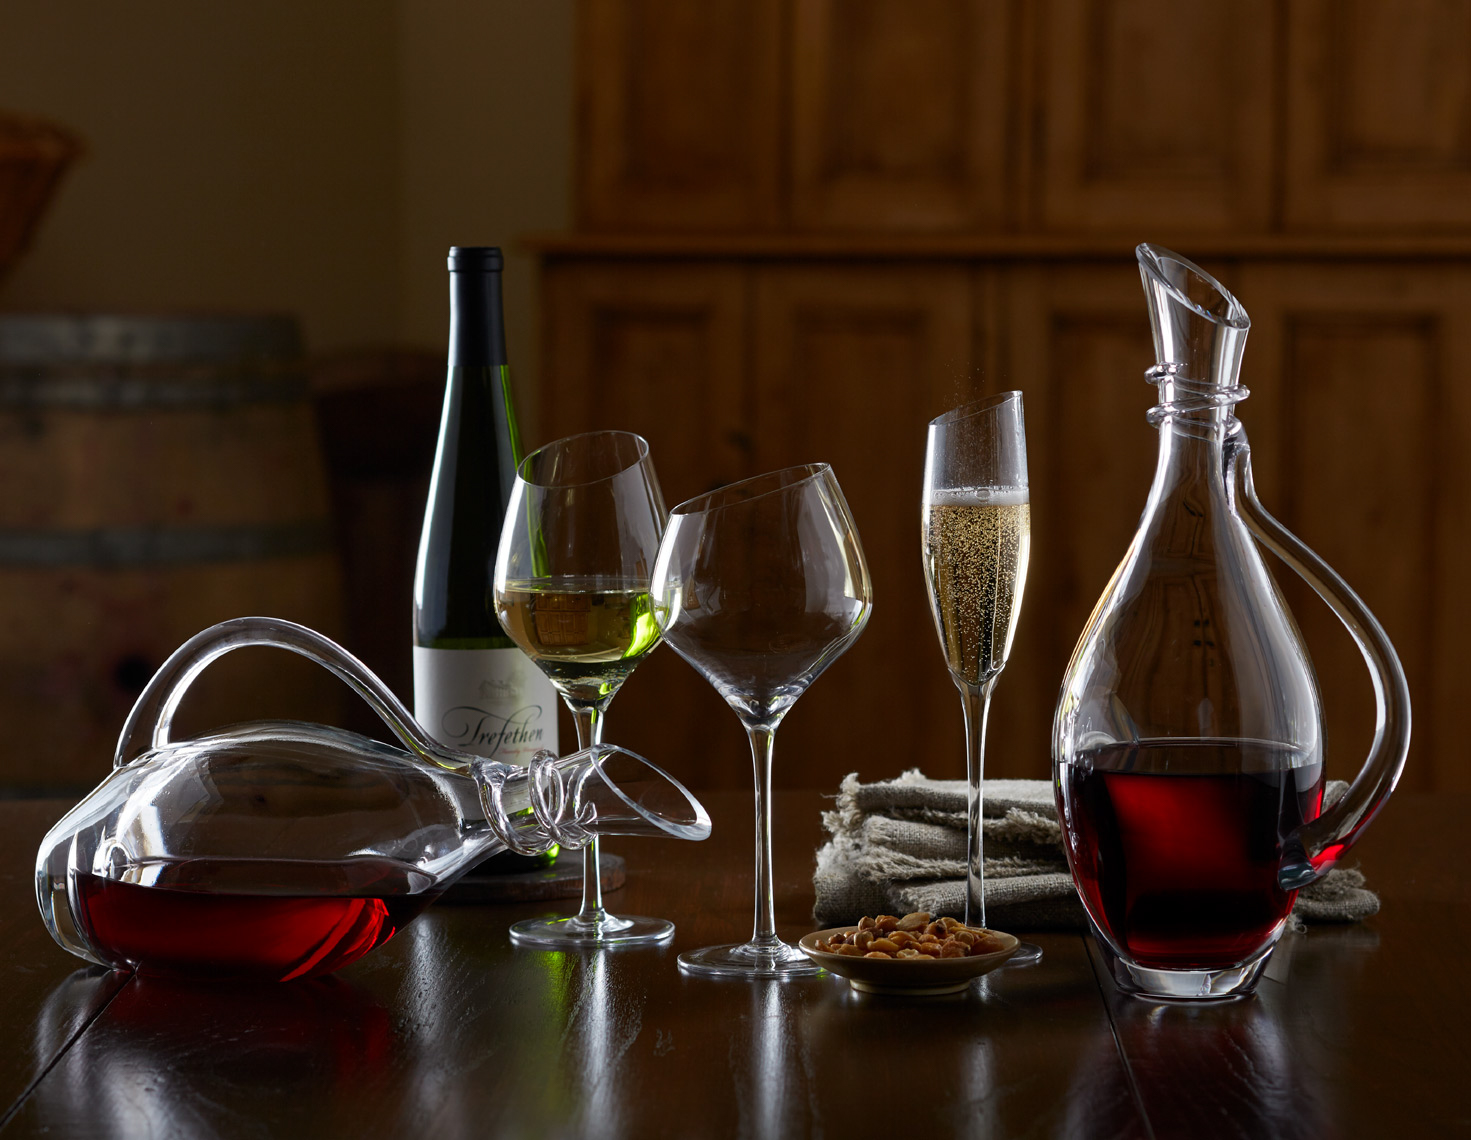 variety of glassware with red and white wine